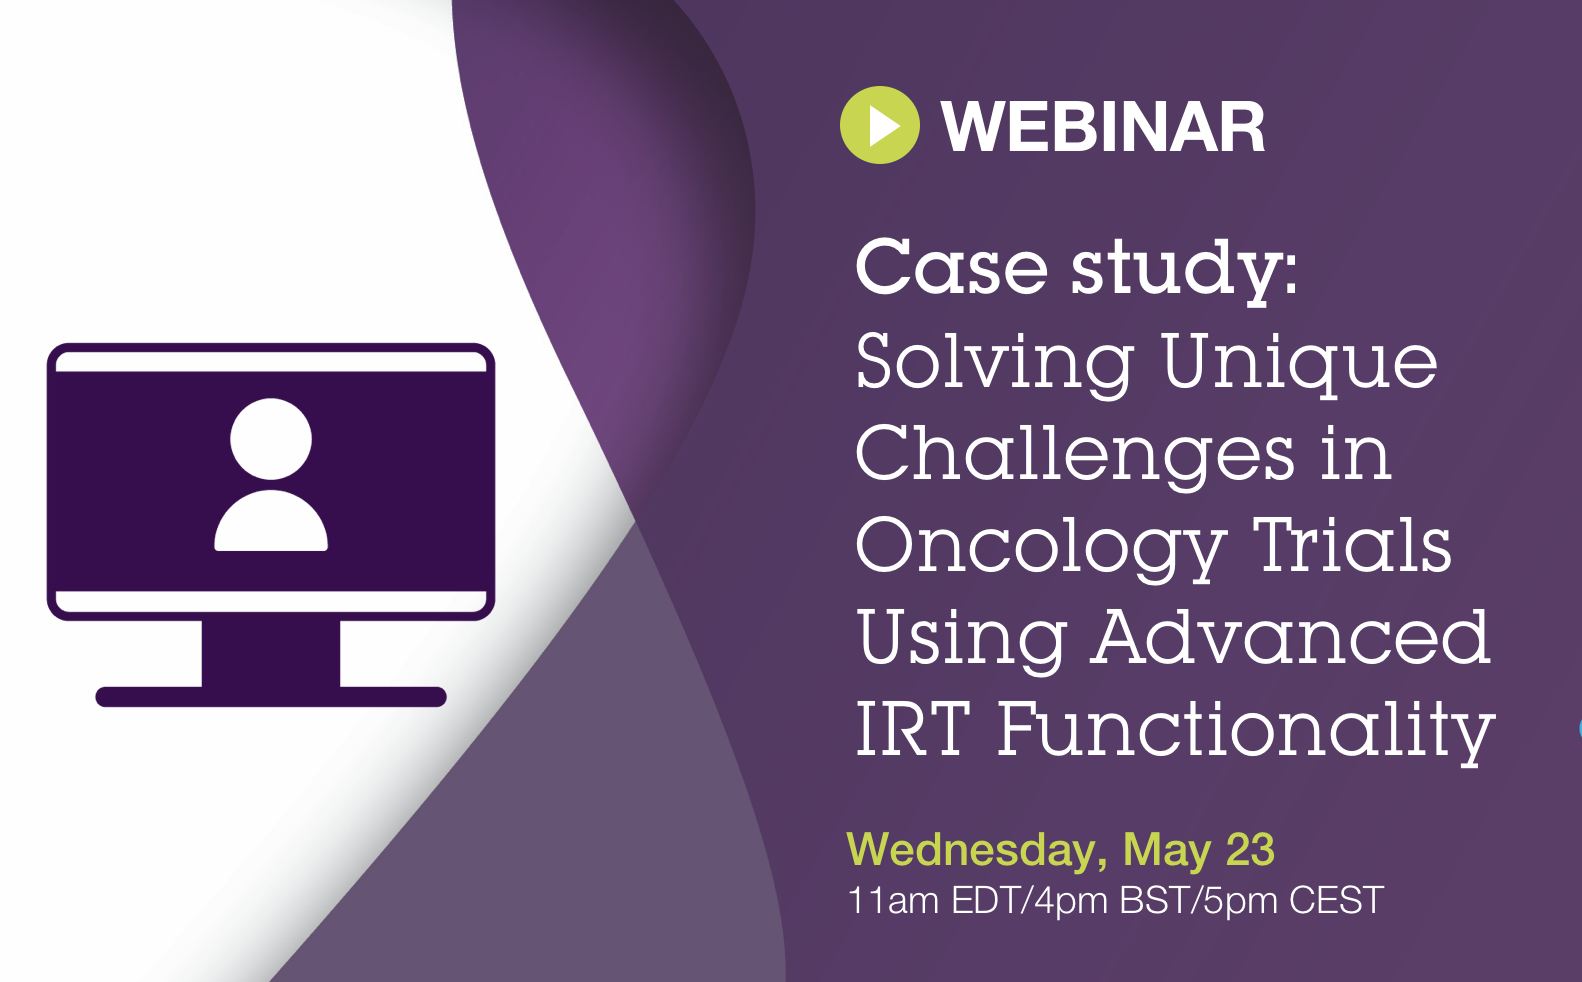 Webinar | Case Study: Solving Unique Challenges in Oncology Trials Using Advanced IRT Functionality